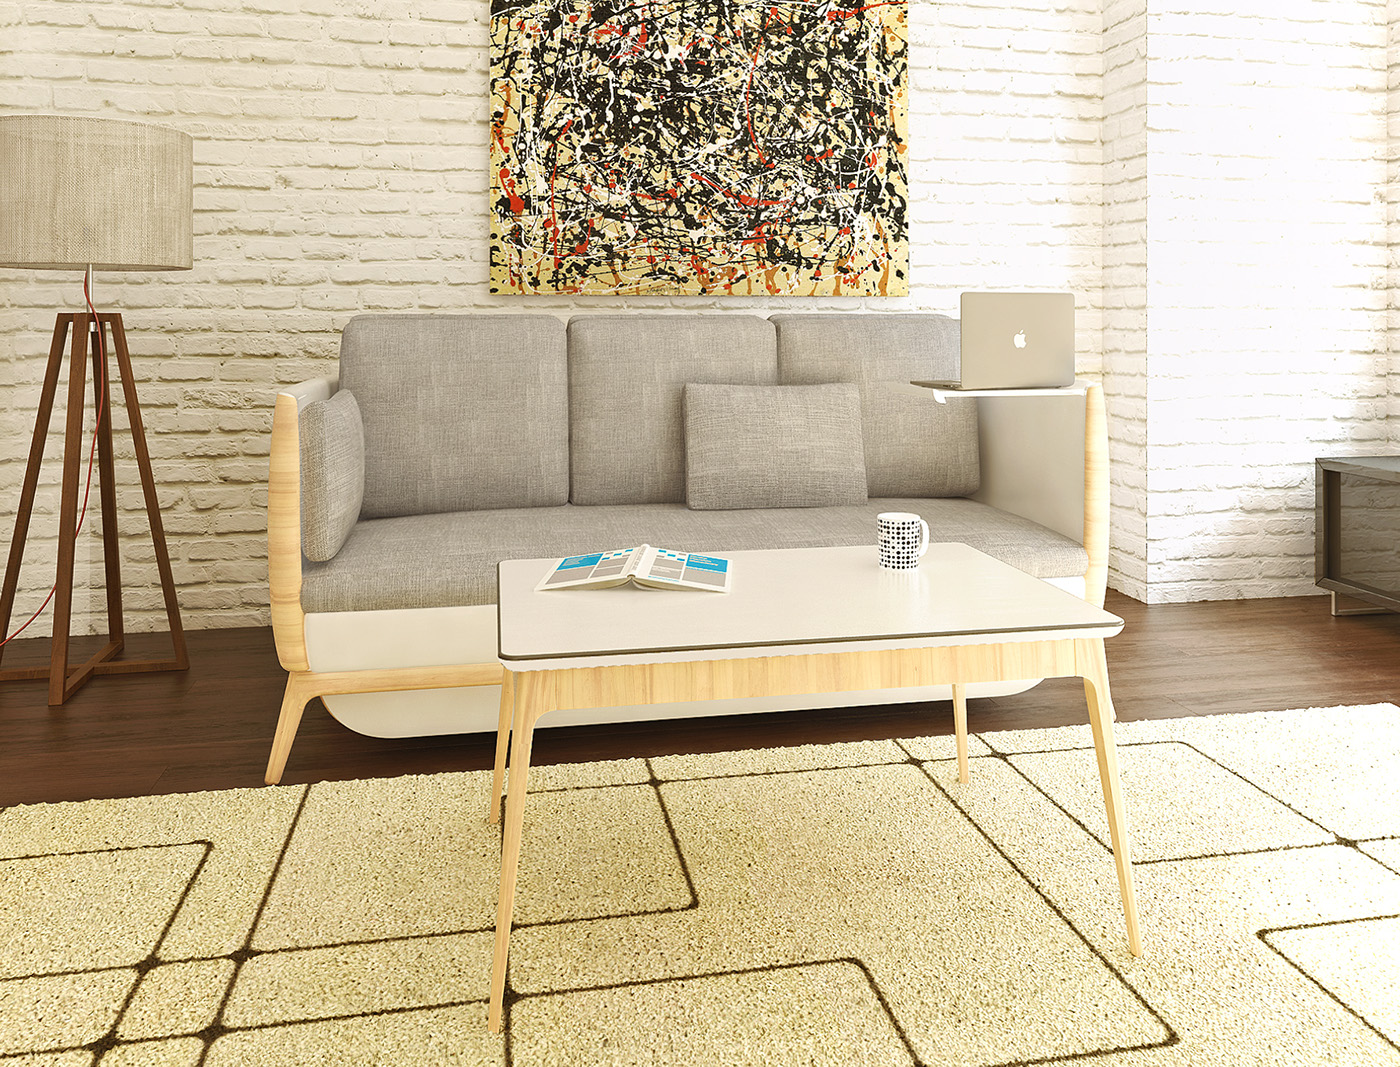 sofa Couch bed transformable stools table wooden contemporary multifunctional A Design Award